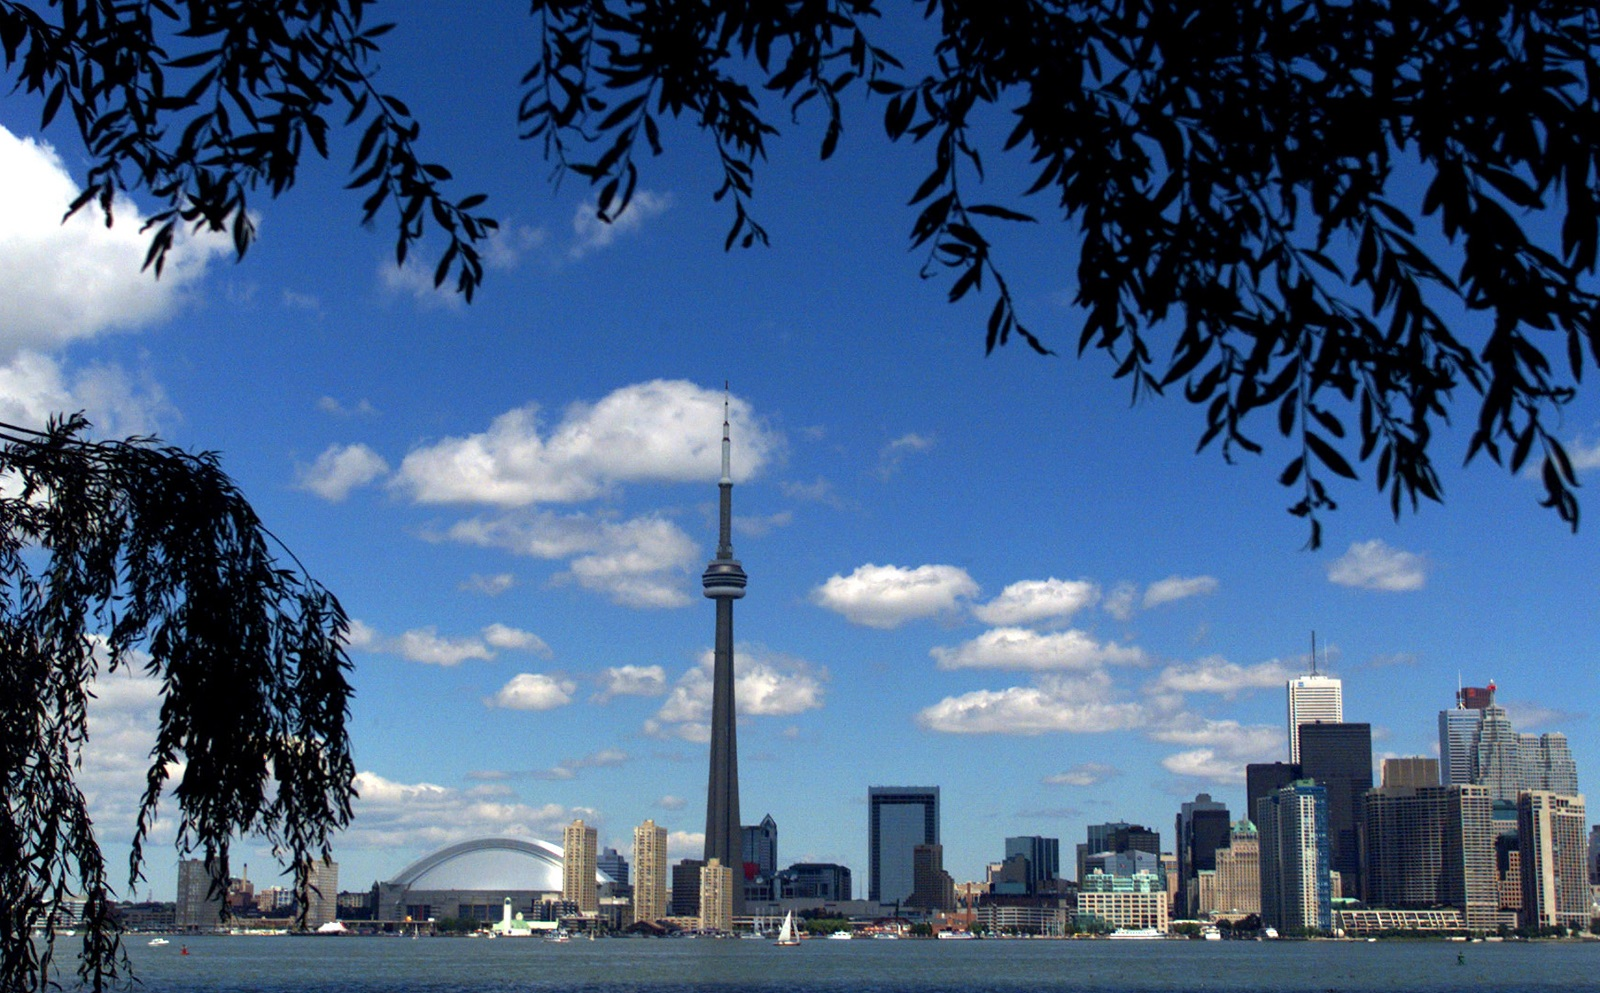 Going to the top of the CN Tower is just one of many things to do in Toronto. (Getty Images)